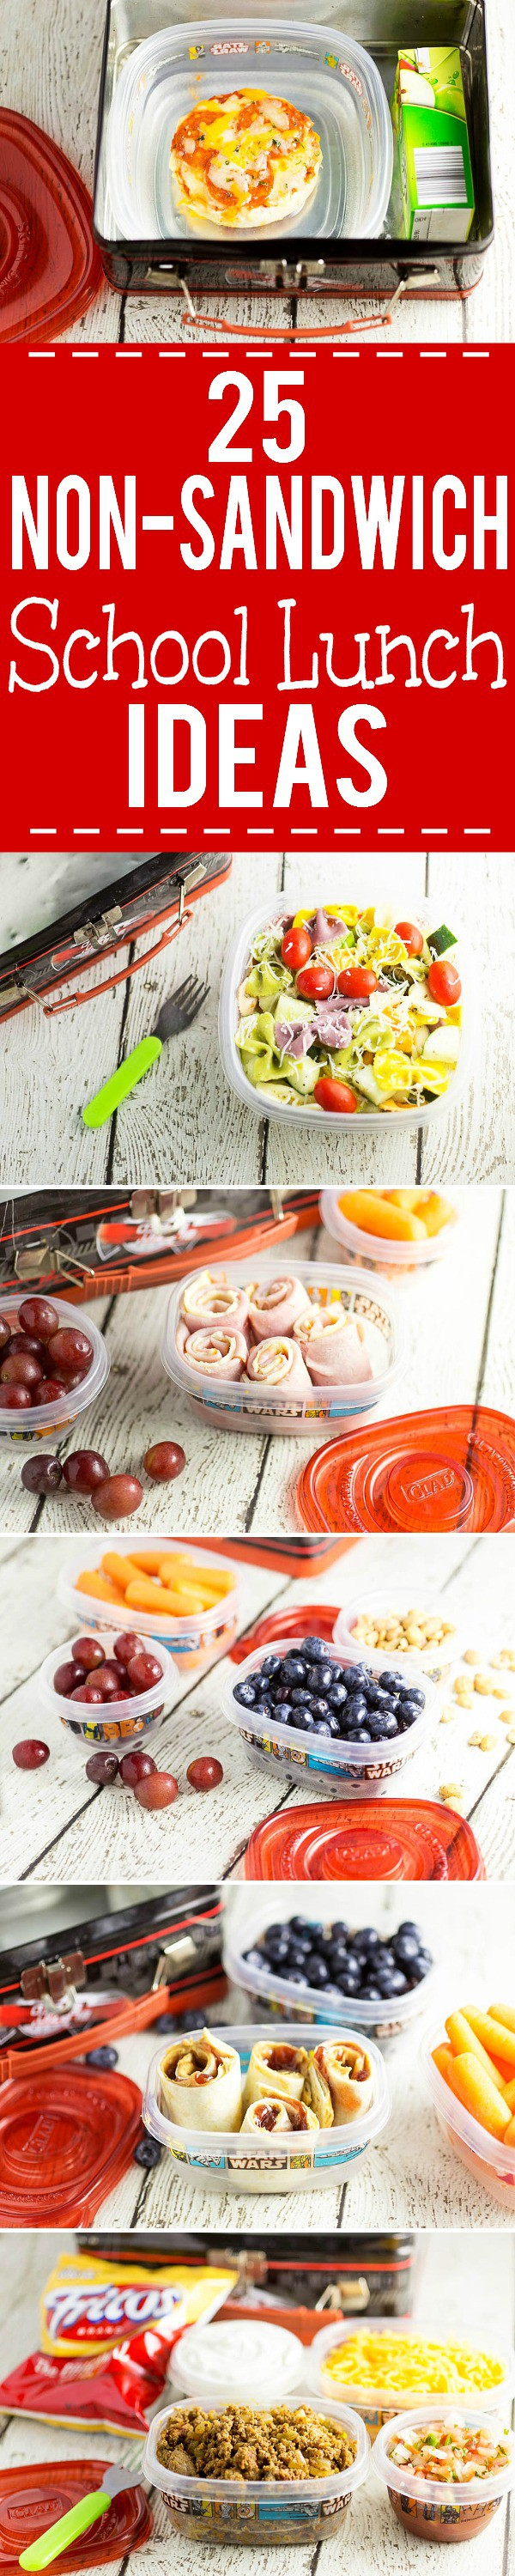 25 Non-Sandwich School Lunch Ideas - Learn how to stay out of a lunchbox rut! Be inspired to get out and stay out of a lunchbox rut this school year with these 25 non-sandwich school lunch ideas that your kids will love! These are great ideas!